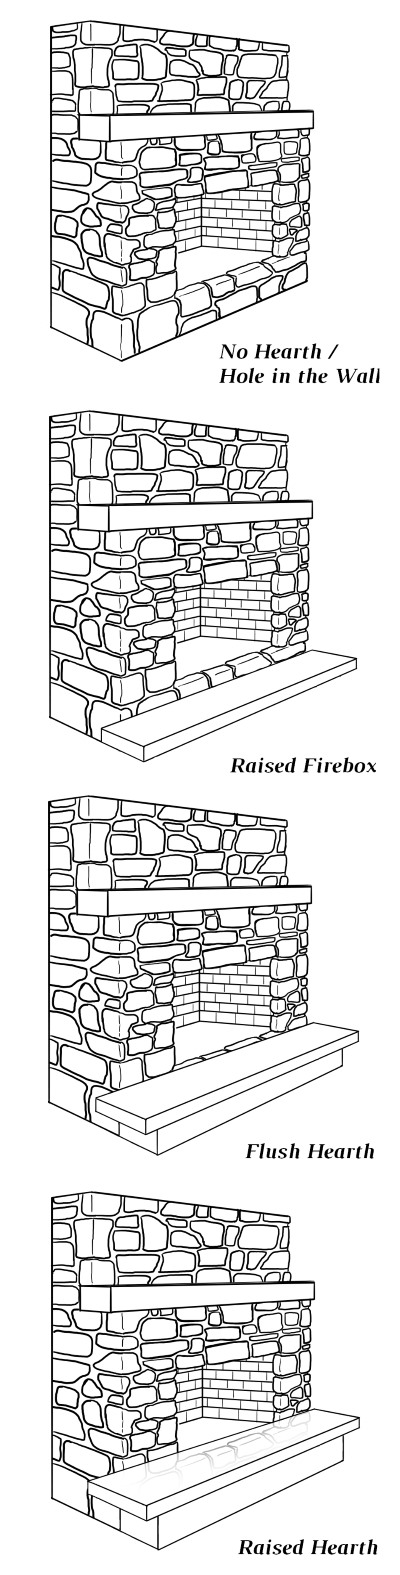 Different types of hearths